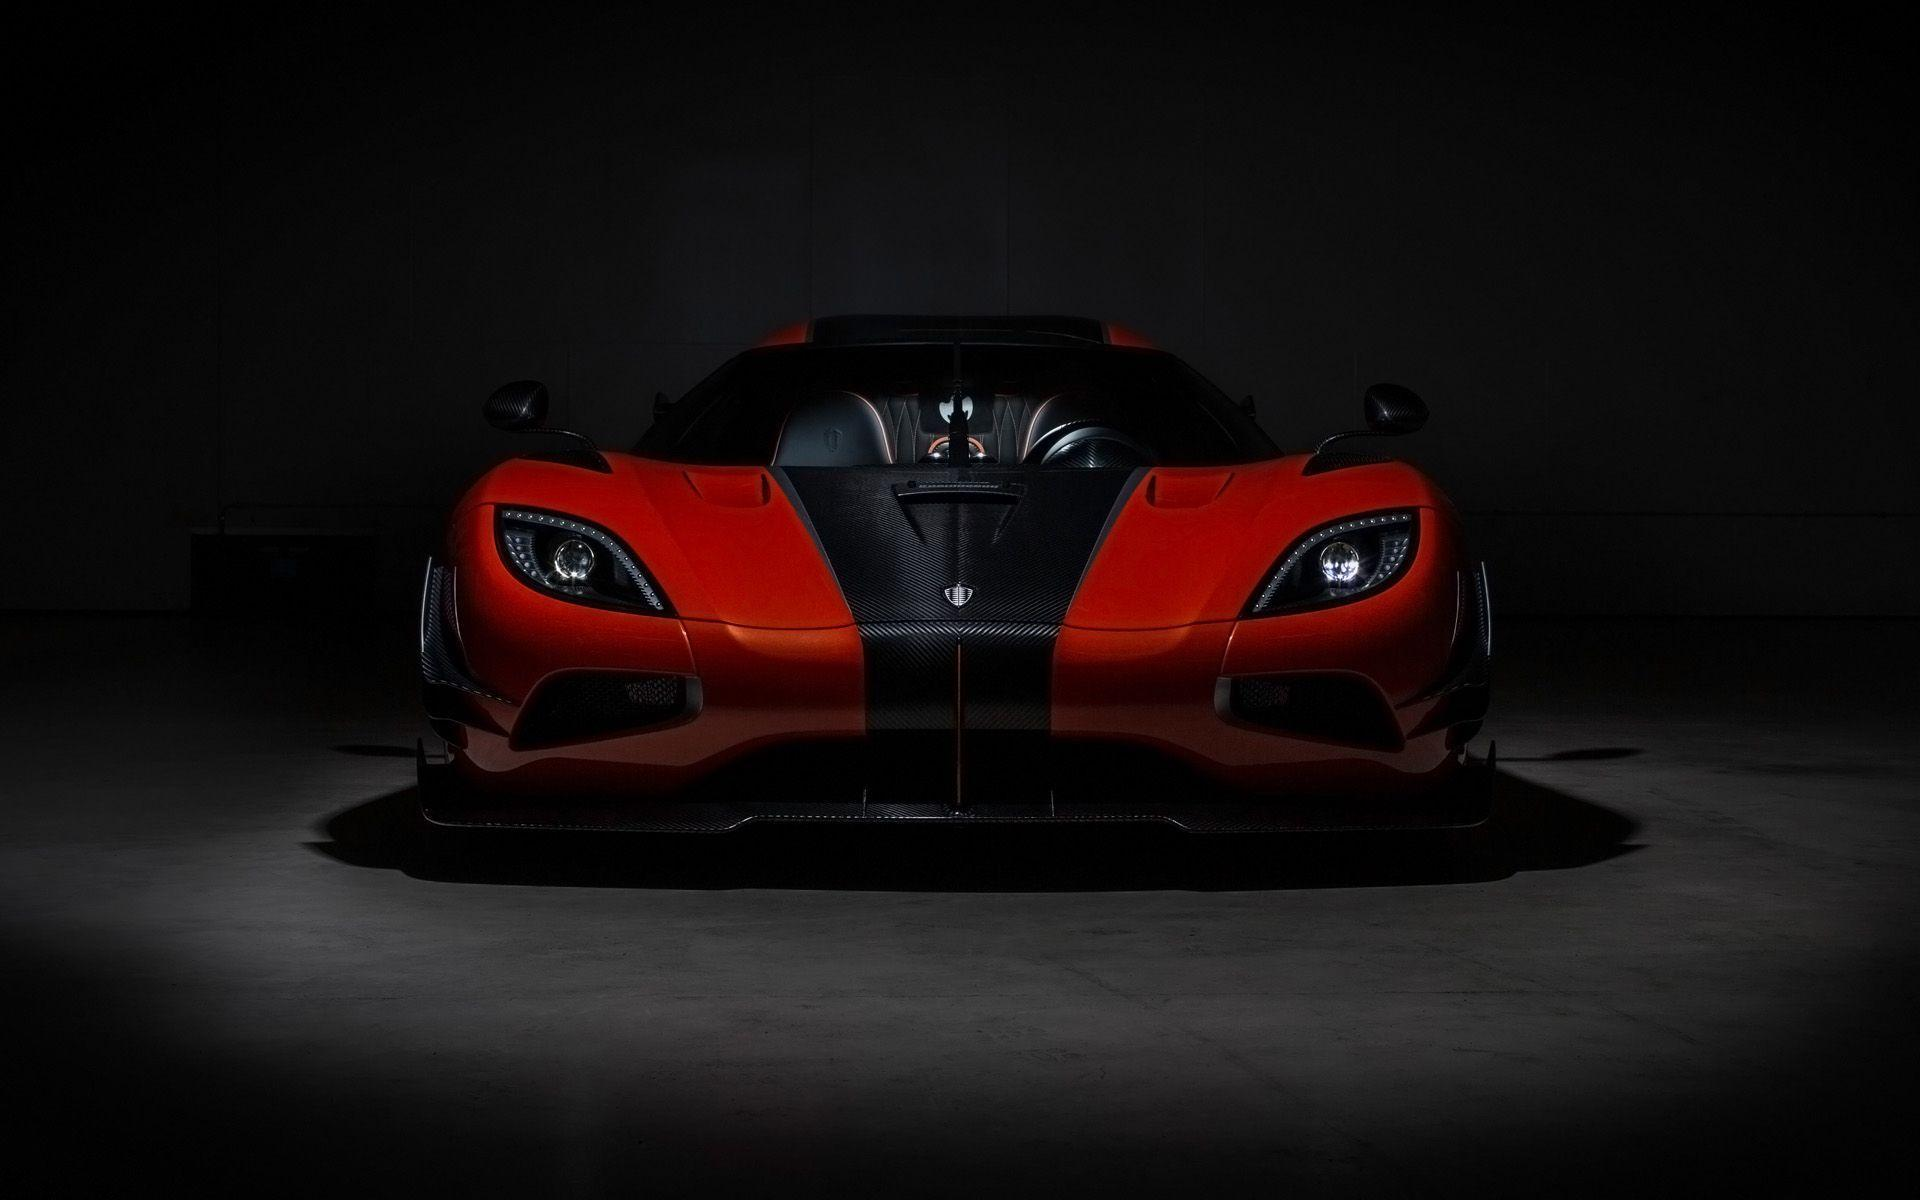 2016 Koenigsegg Agera Final One of One Wallpapers